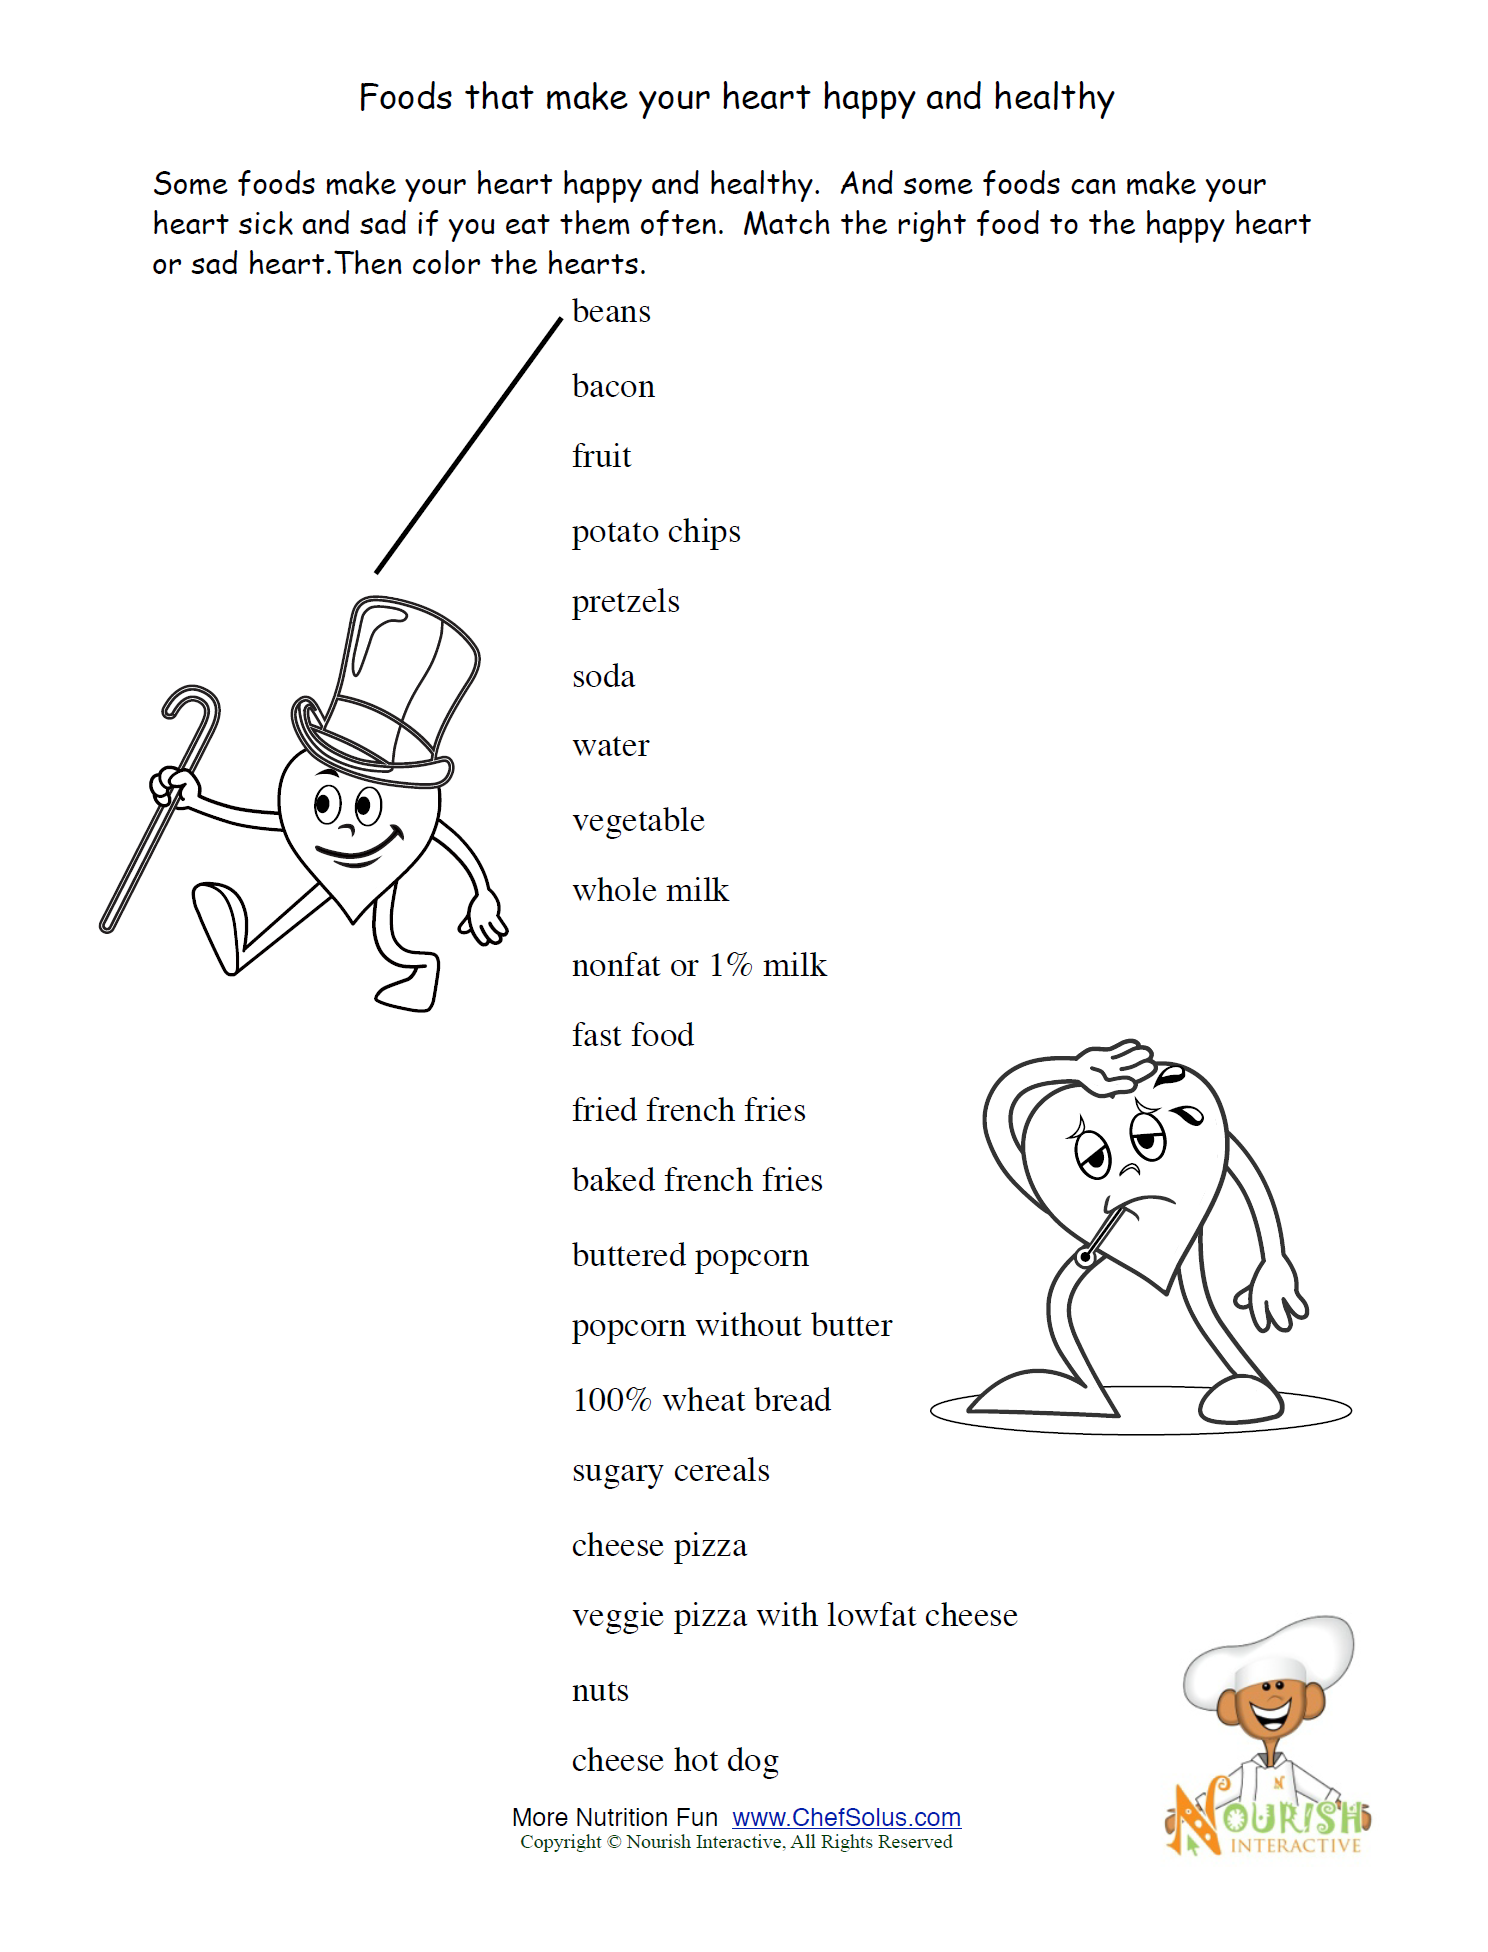 Worksheets Health Education Worksheets healthy heart please make sure to print the answer key as well our health worksheets promote foods and exercise that keep a childs along with some fun